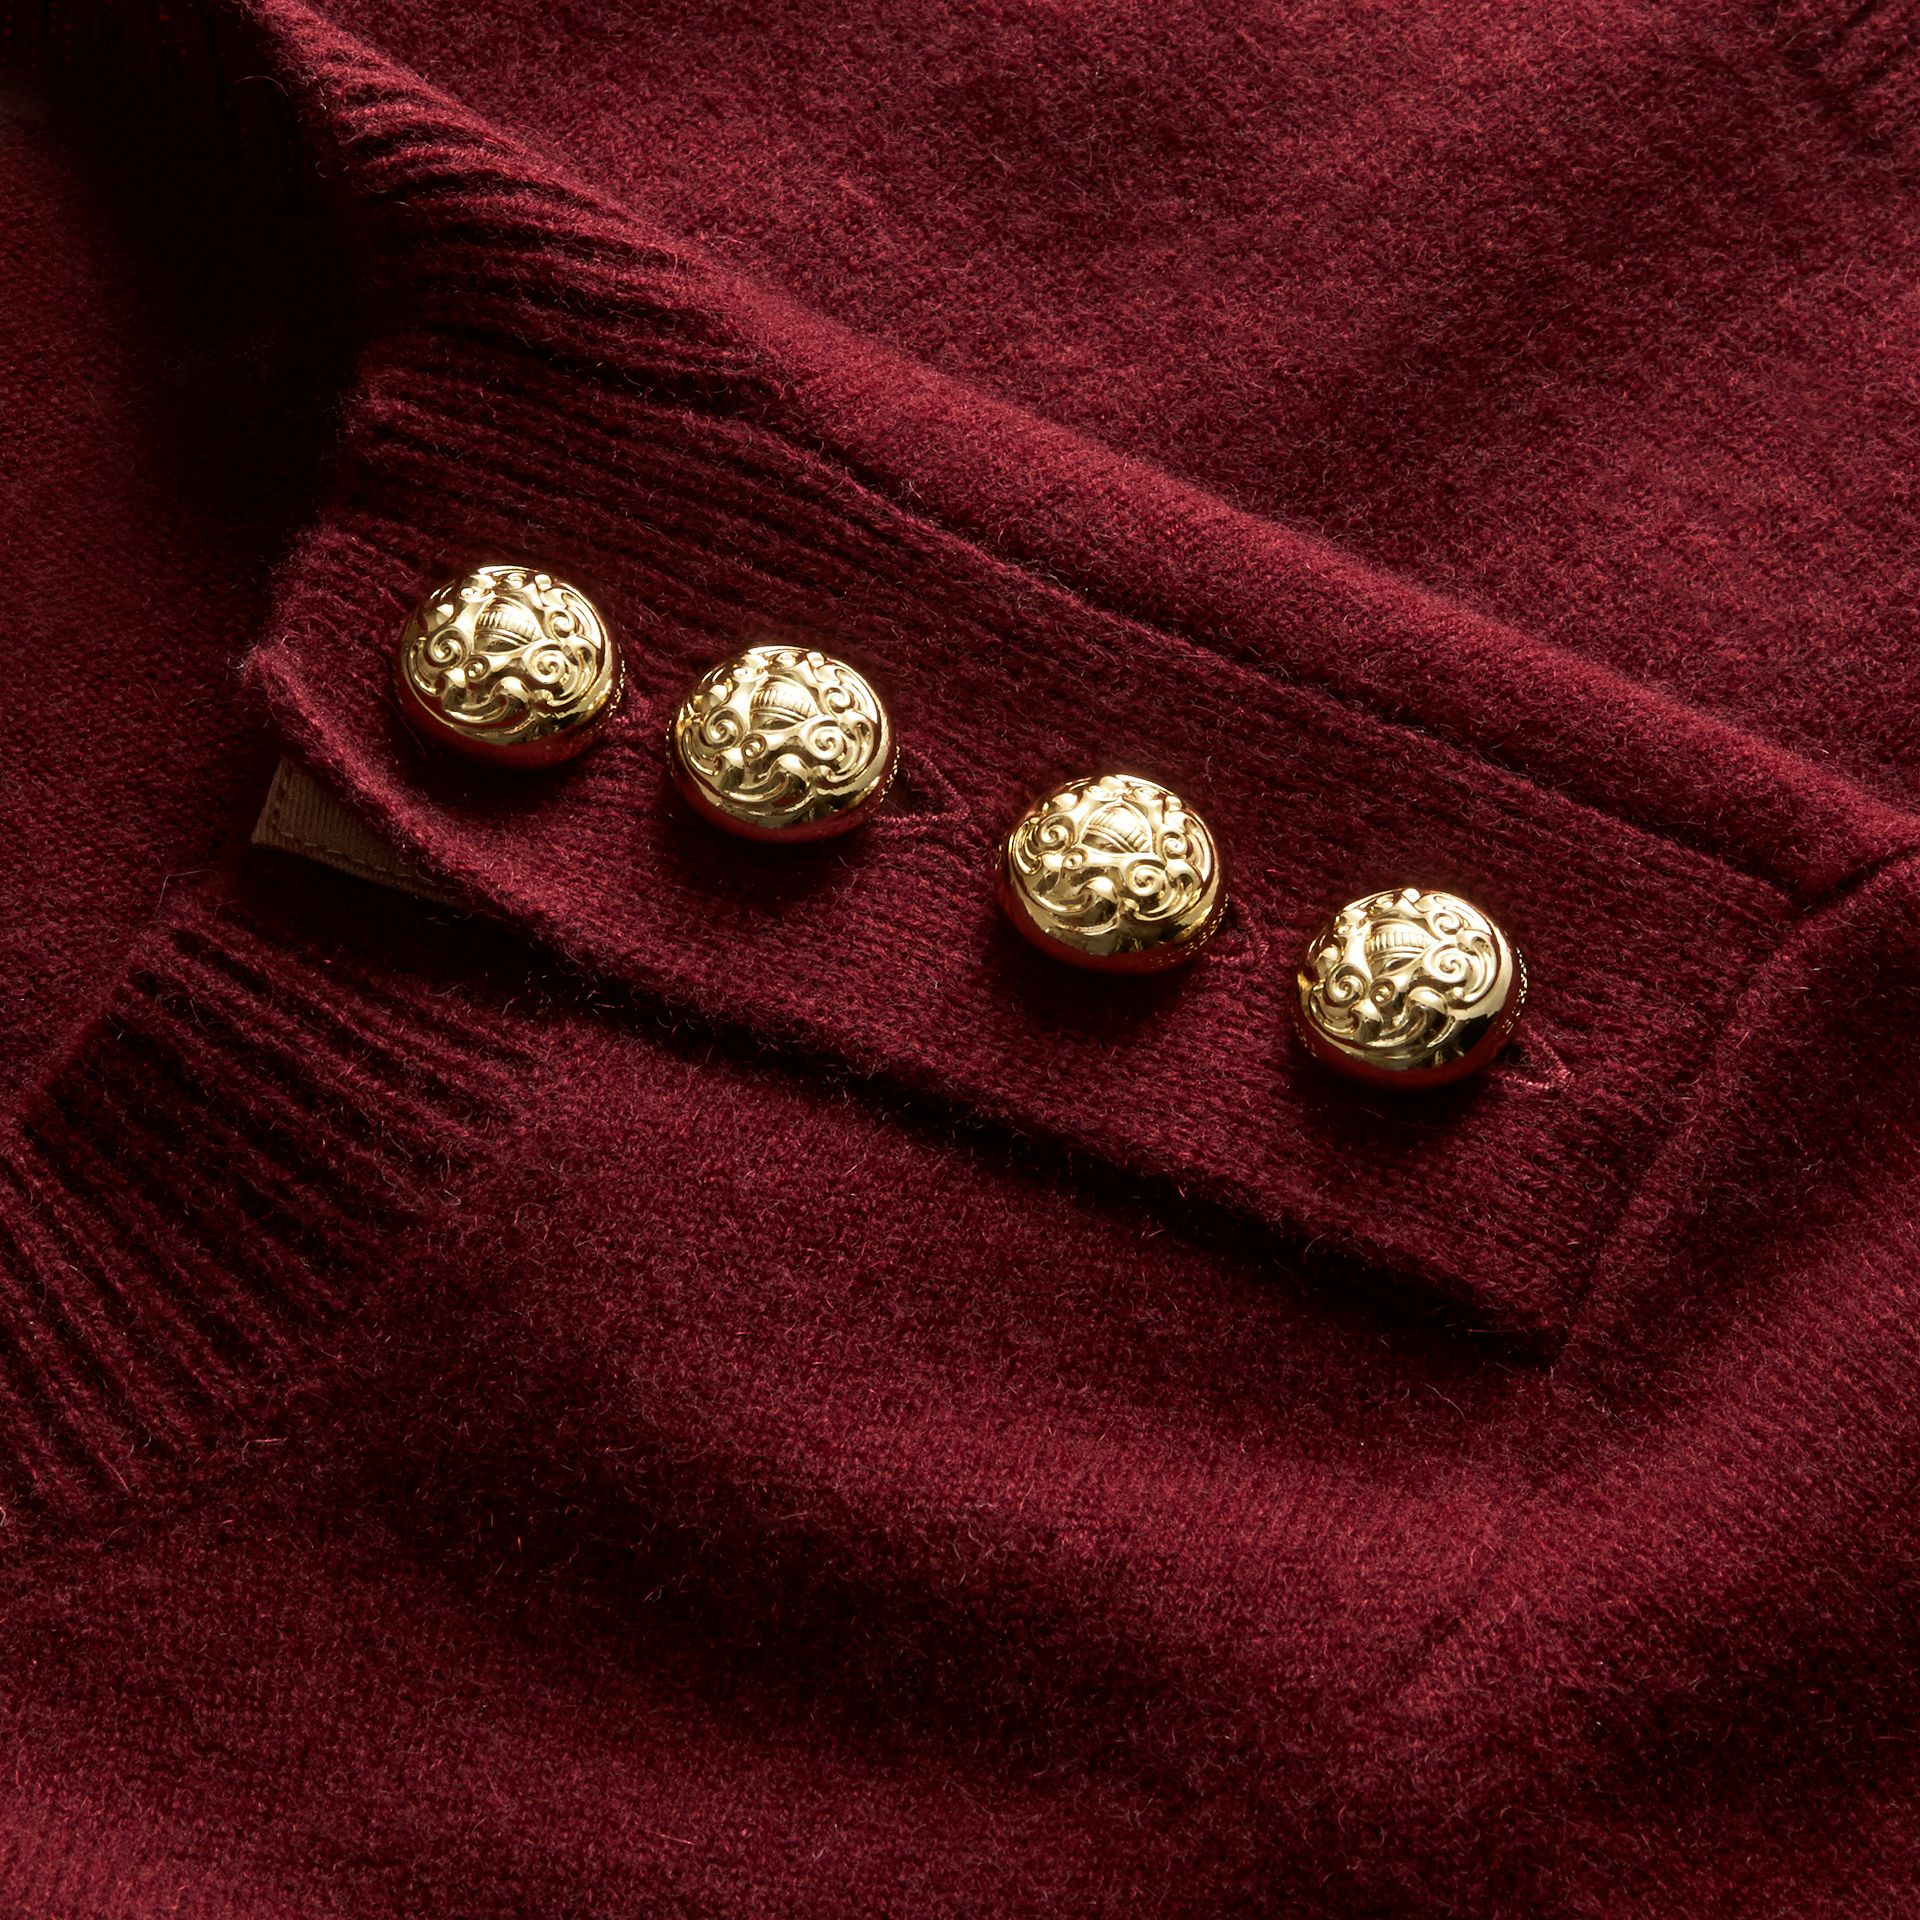 Mahogany red Cashmere Sweater with Crested Buttons Mahogany Red - gallery image 2